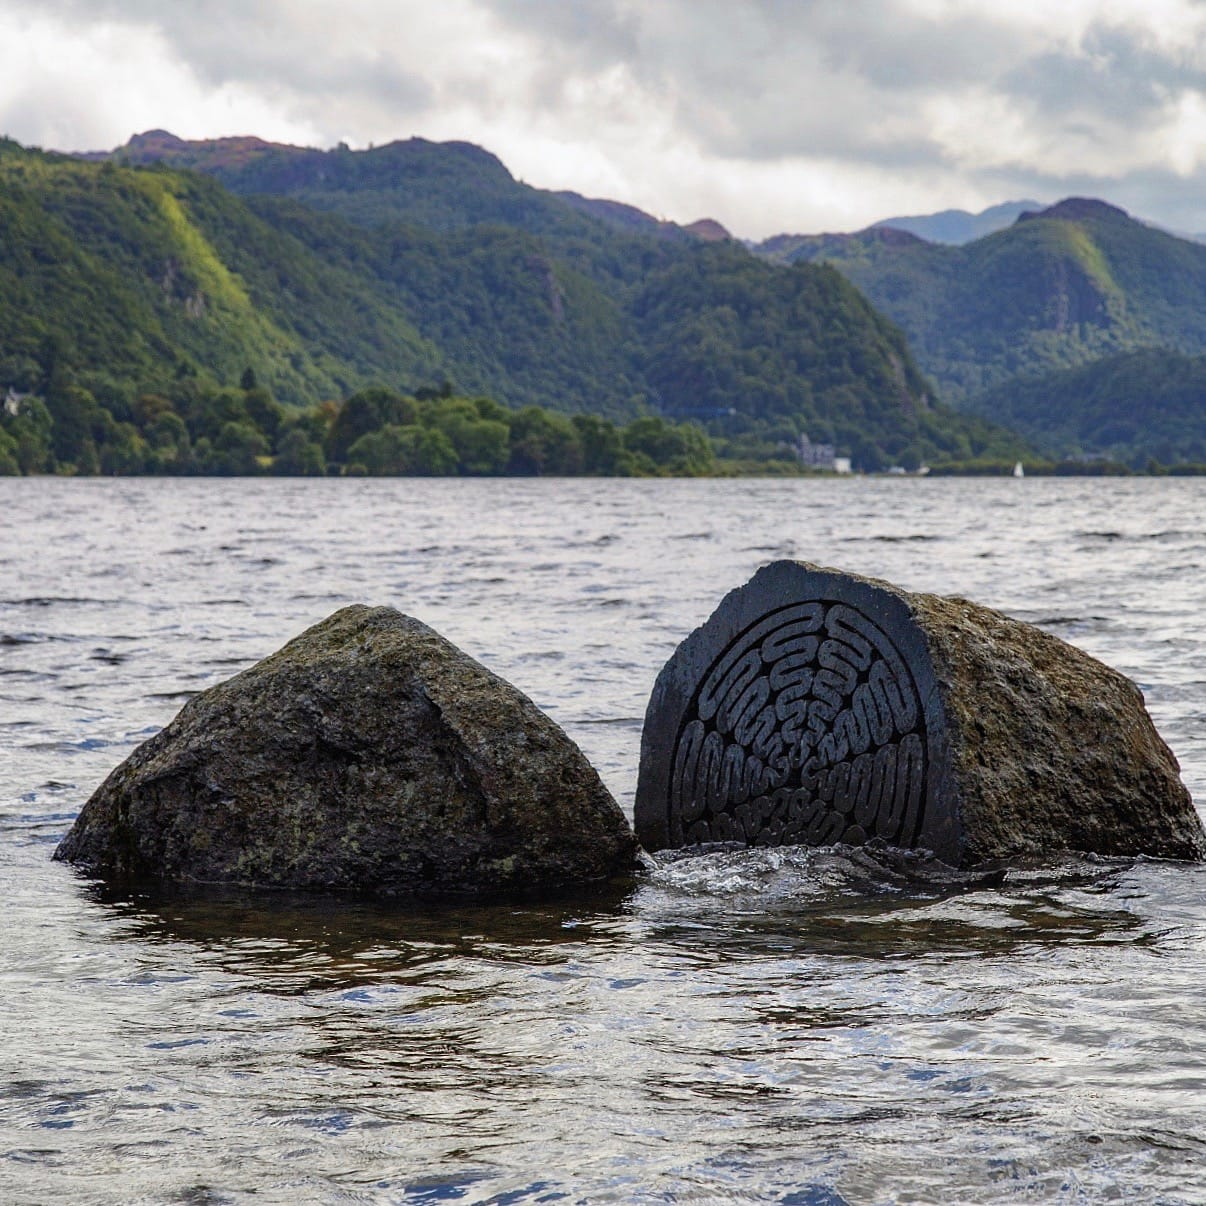 The Hundred Year Stone, half submerged in the waters of Derwentwater, with the Borrowdale fells in the distance.